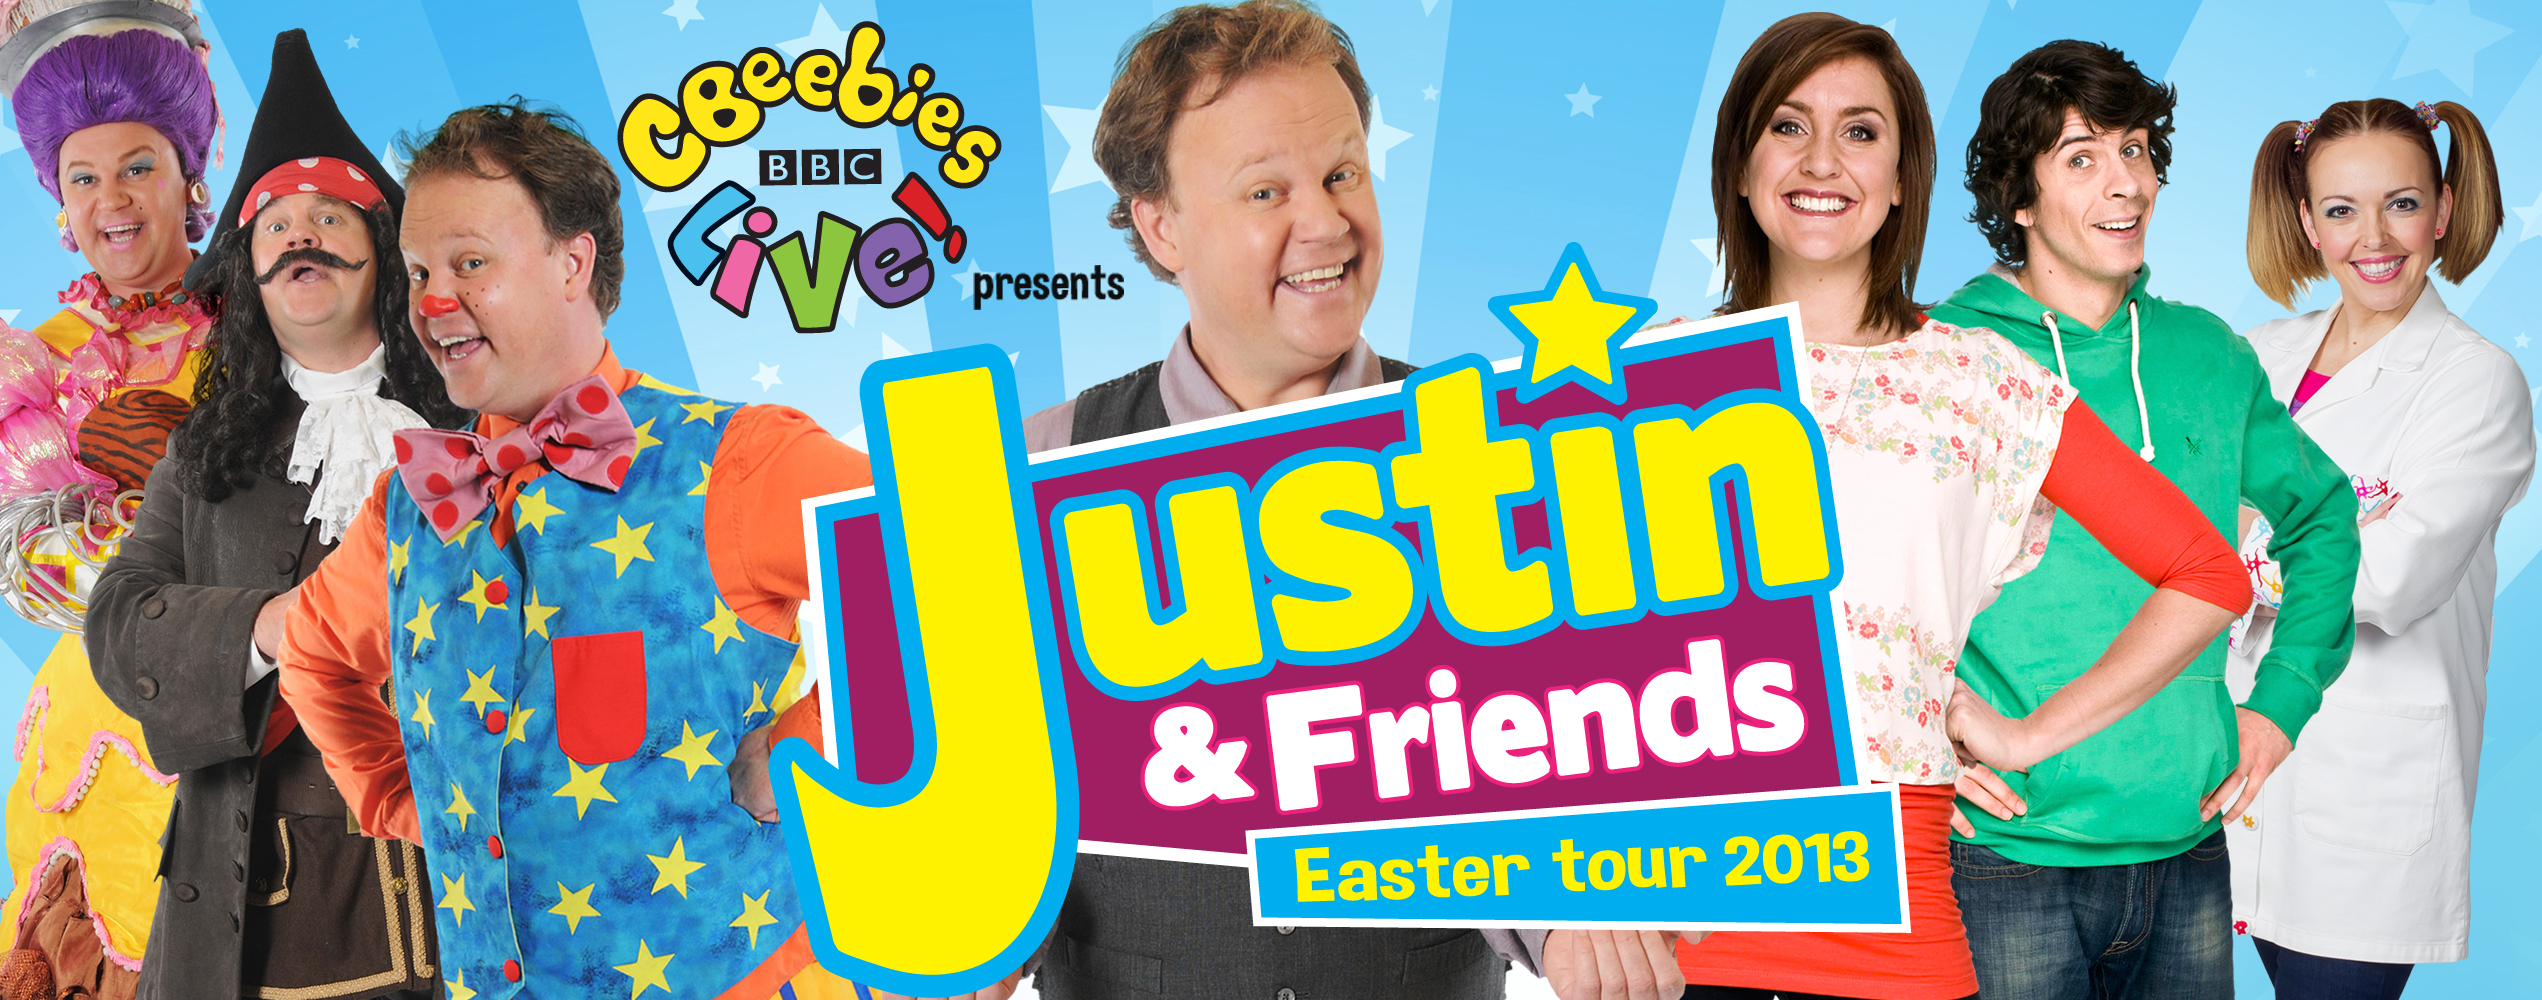 Justin & Friends Easter Tour dates